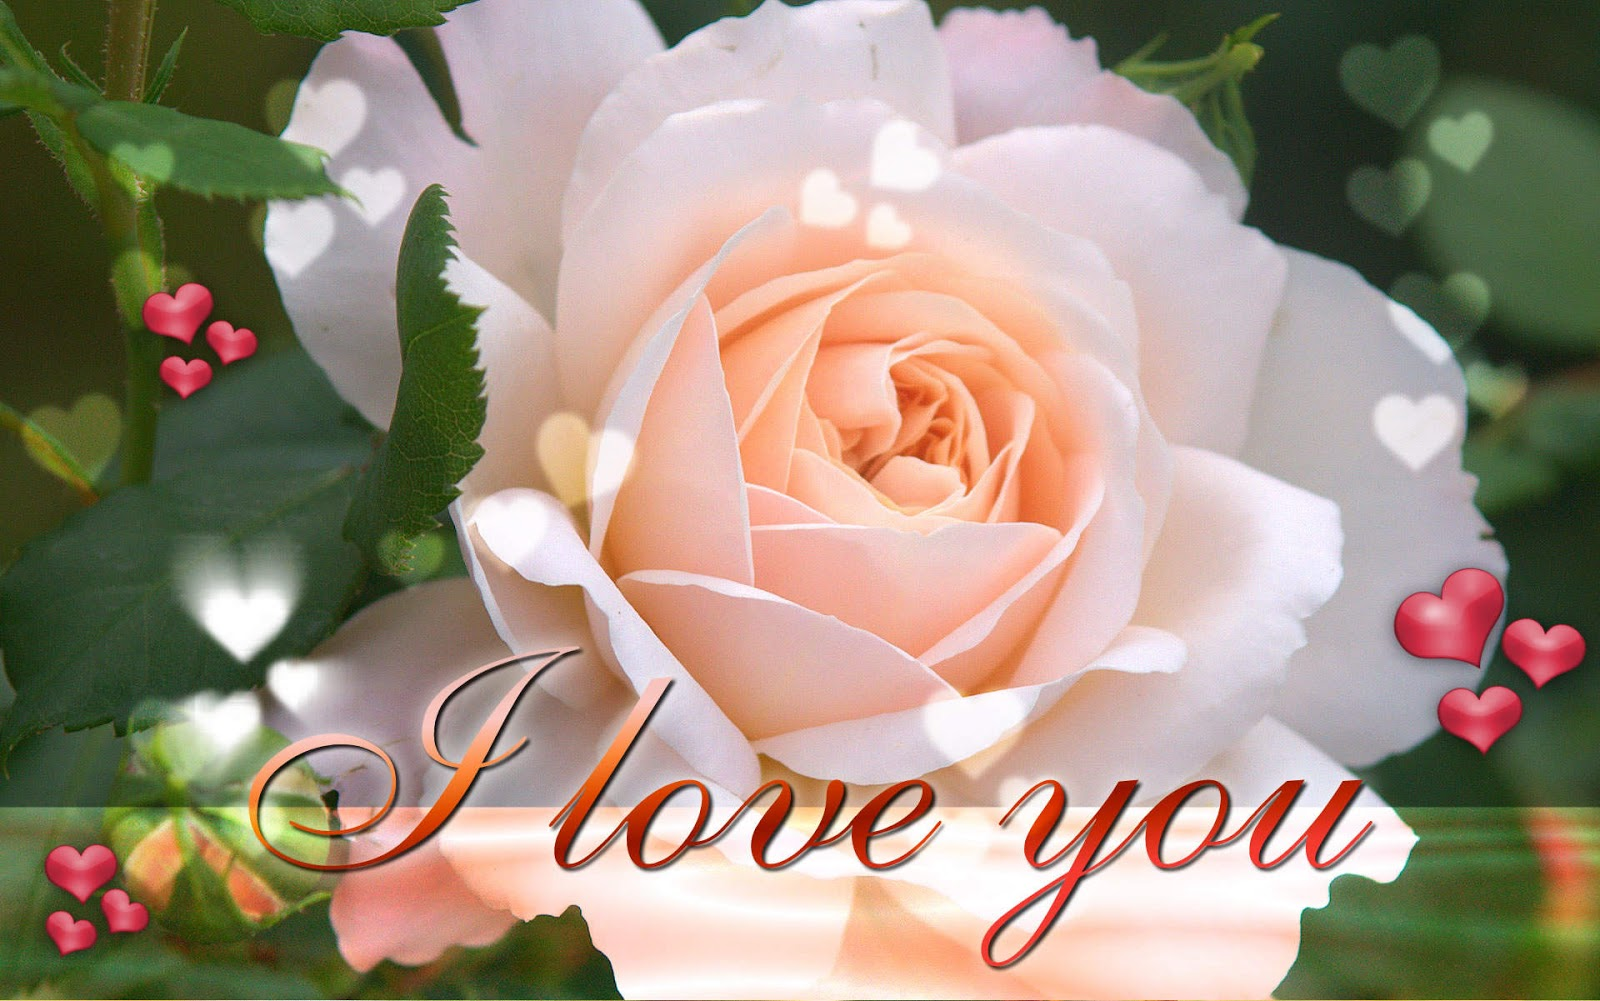 Amazing Wallpapers: I Love You Wallpaper, I Love You